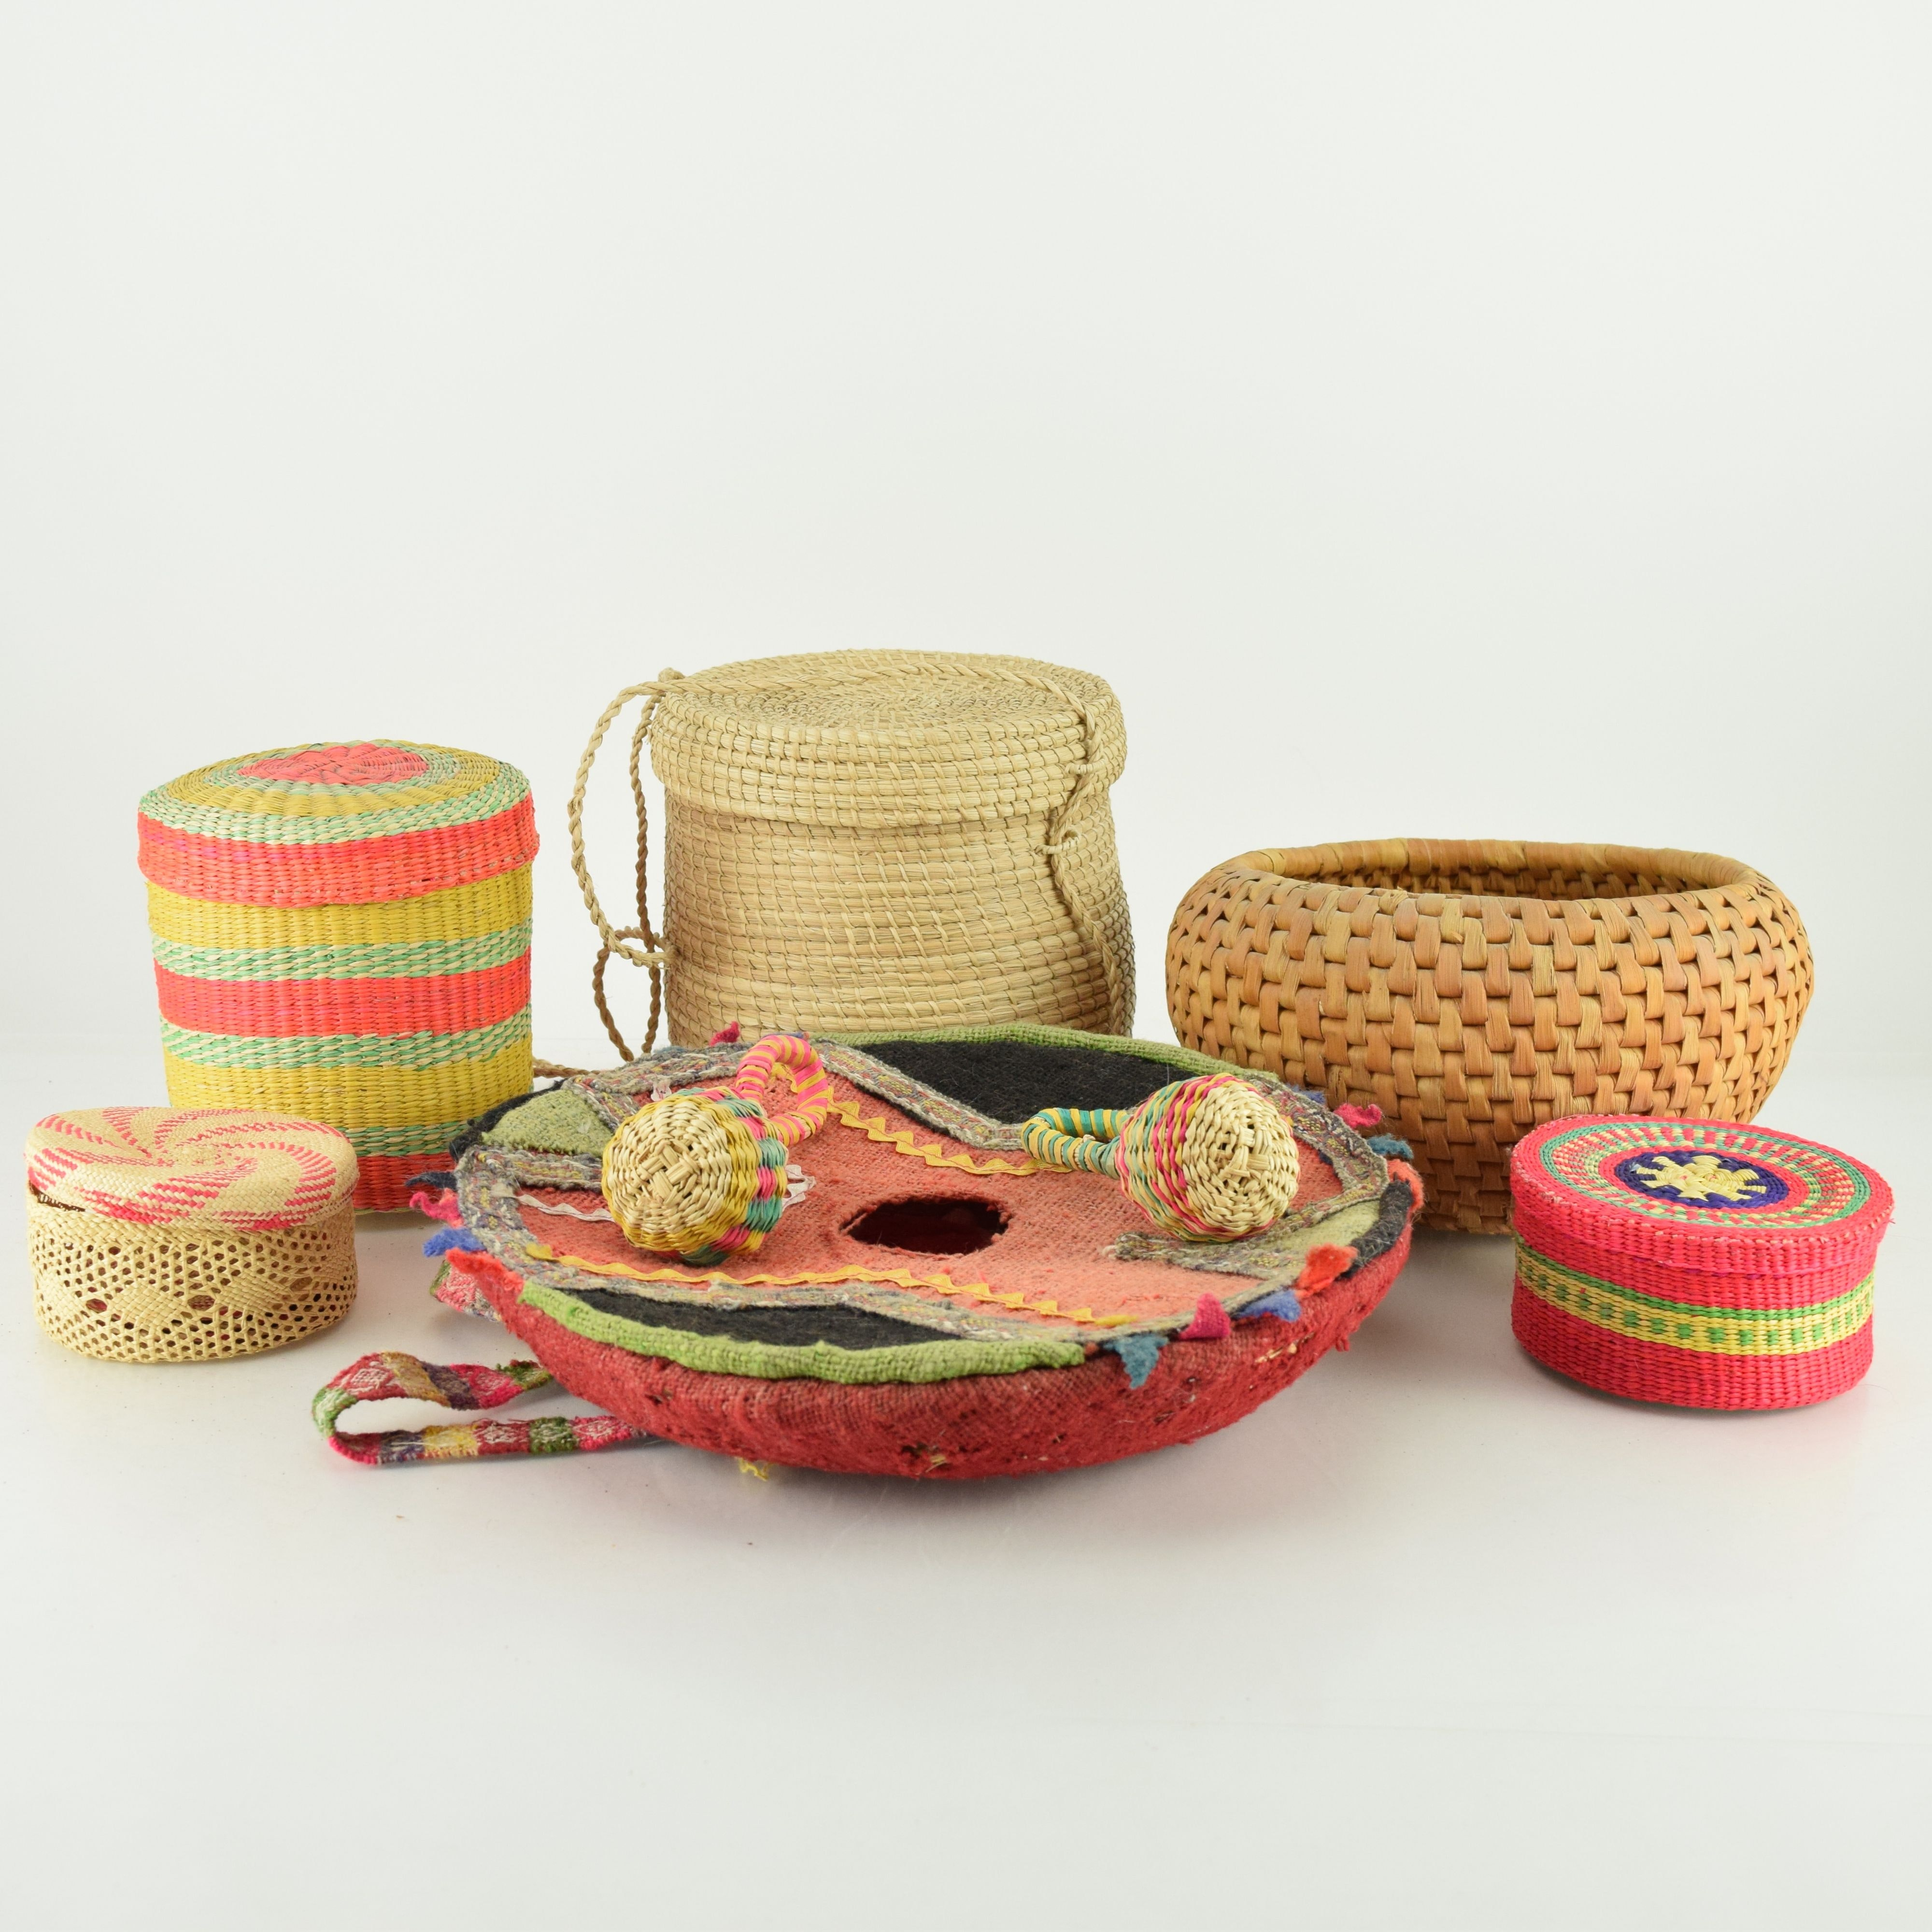 South American Baskets, Textiles and Other Decor